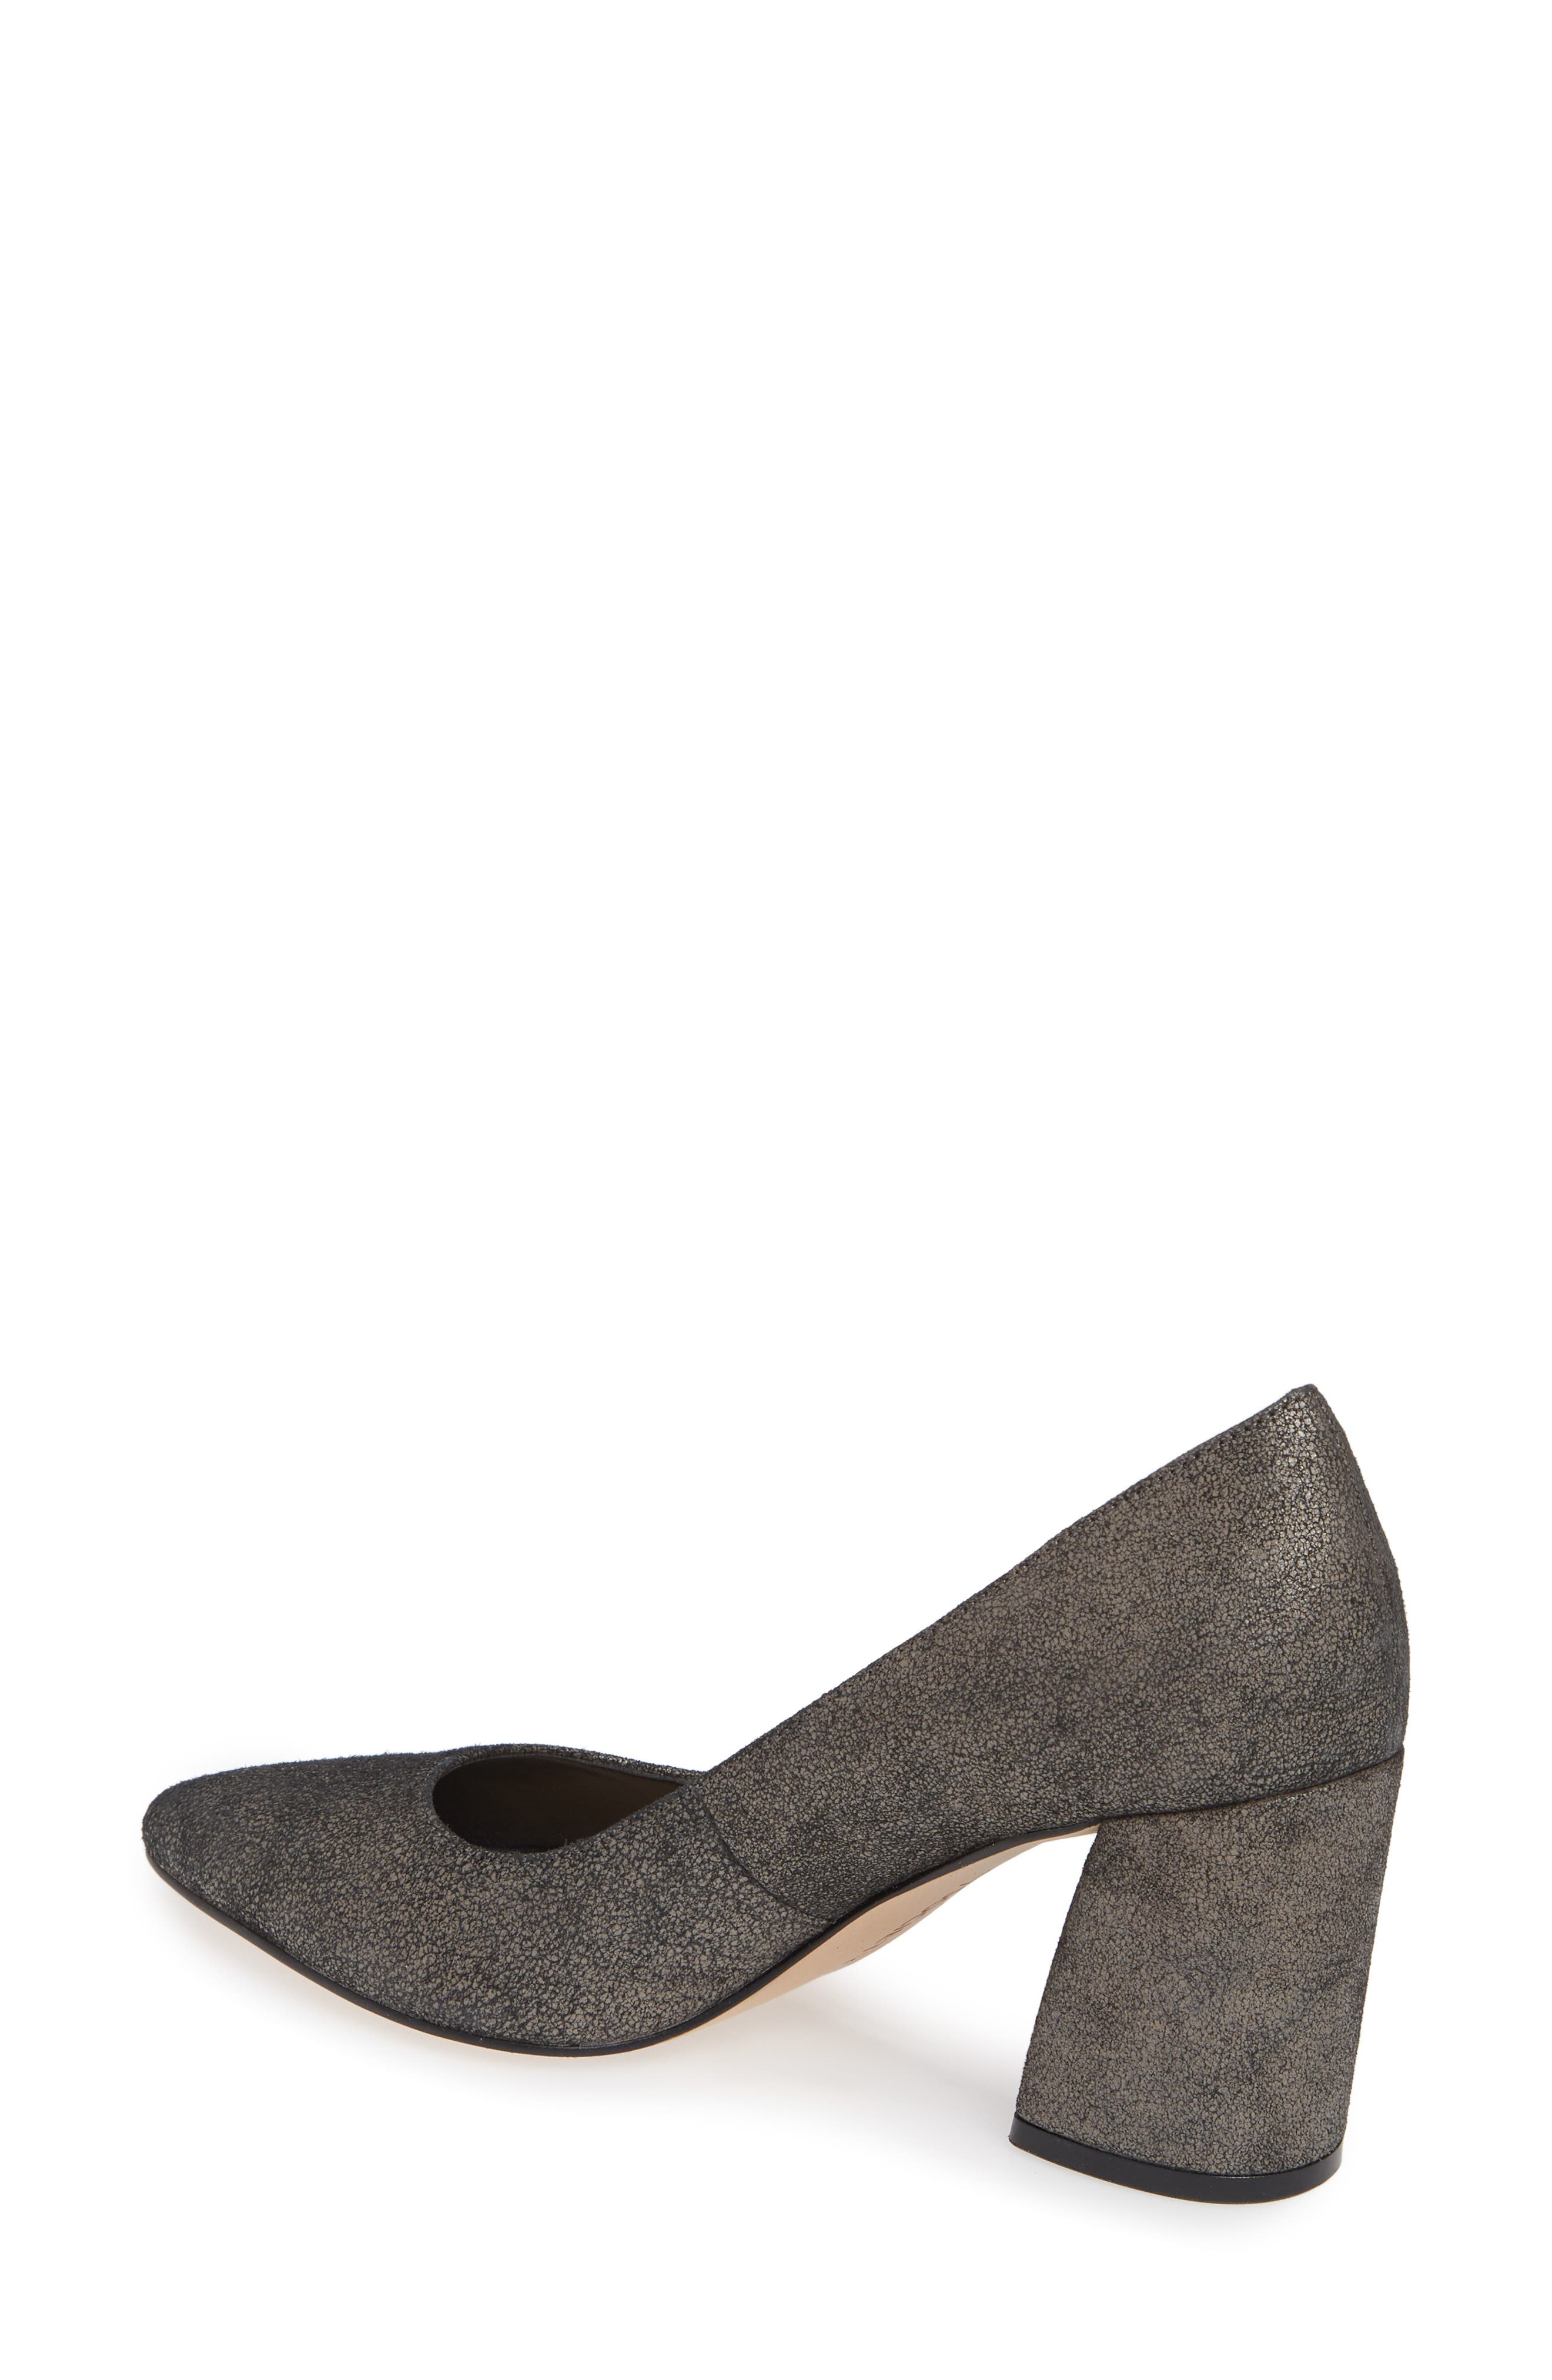 SOLE SOCIETY,                             Twila Pump,                             Alternate thumbnail 2, color,                             DARK CEMENT LEATHER